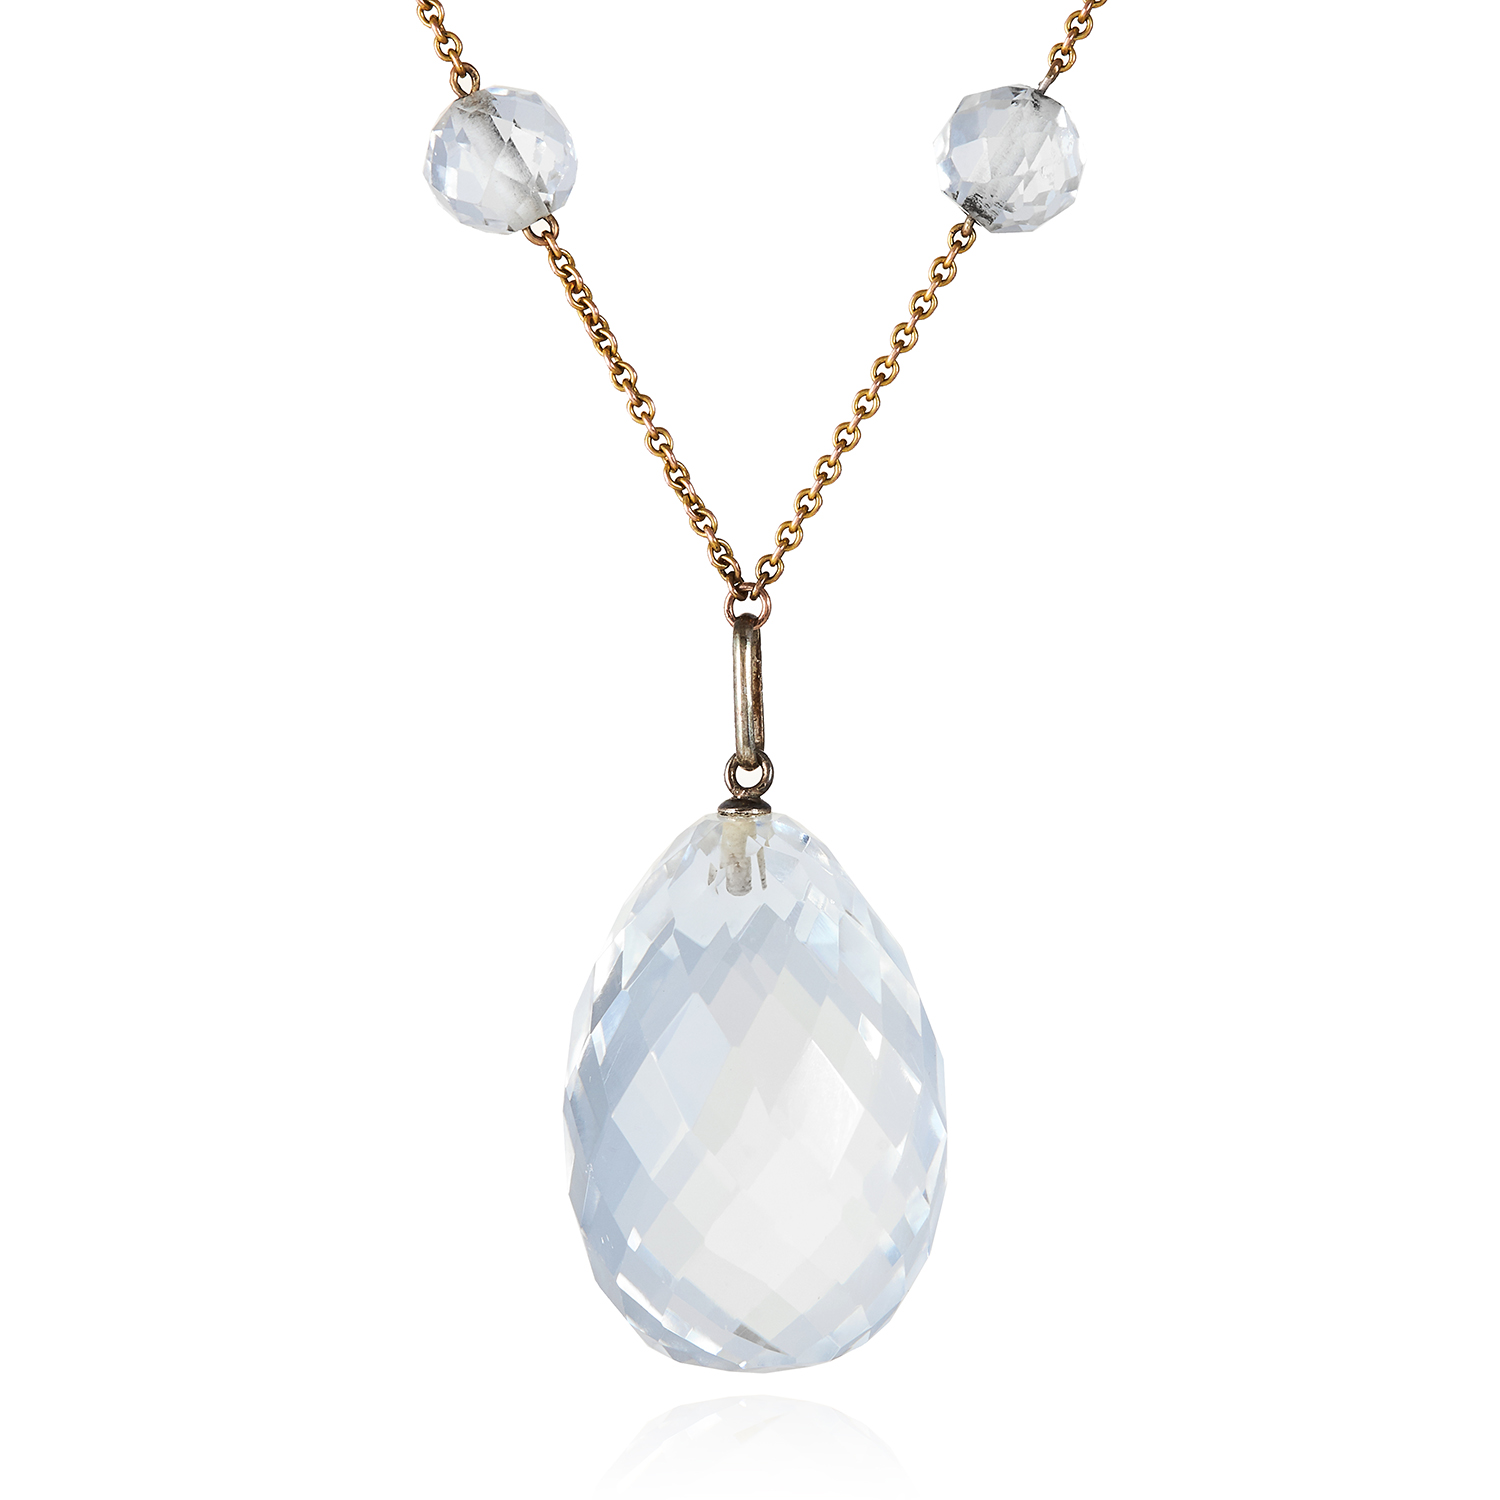 Los 518 - A ROCK CRYSTAL NECKLACE comprising of six faceted rock crystal beads suspending a large faceted rock